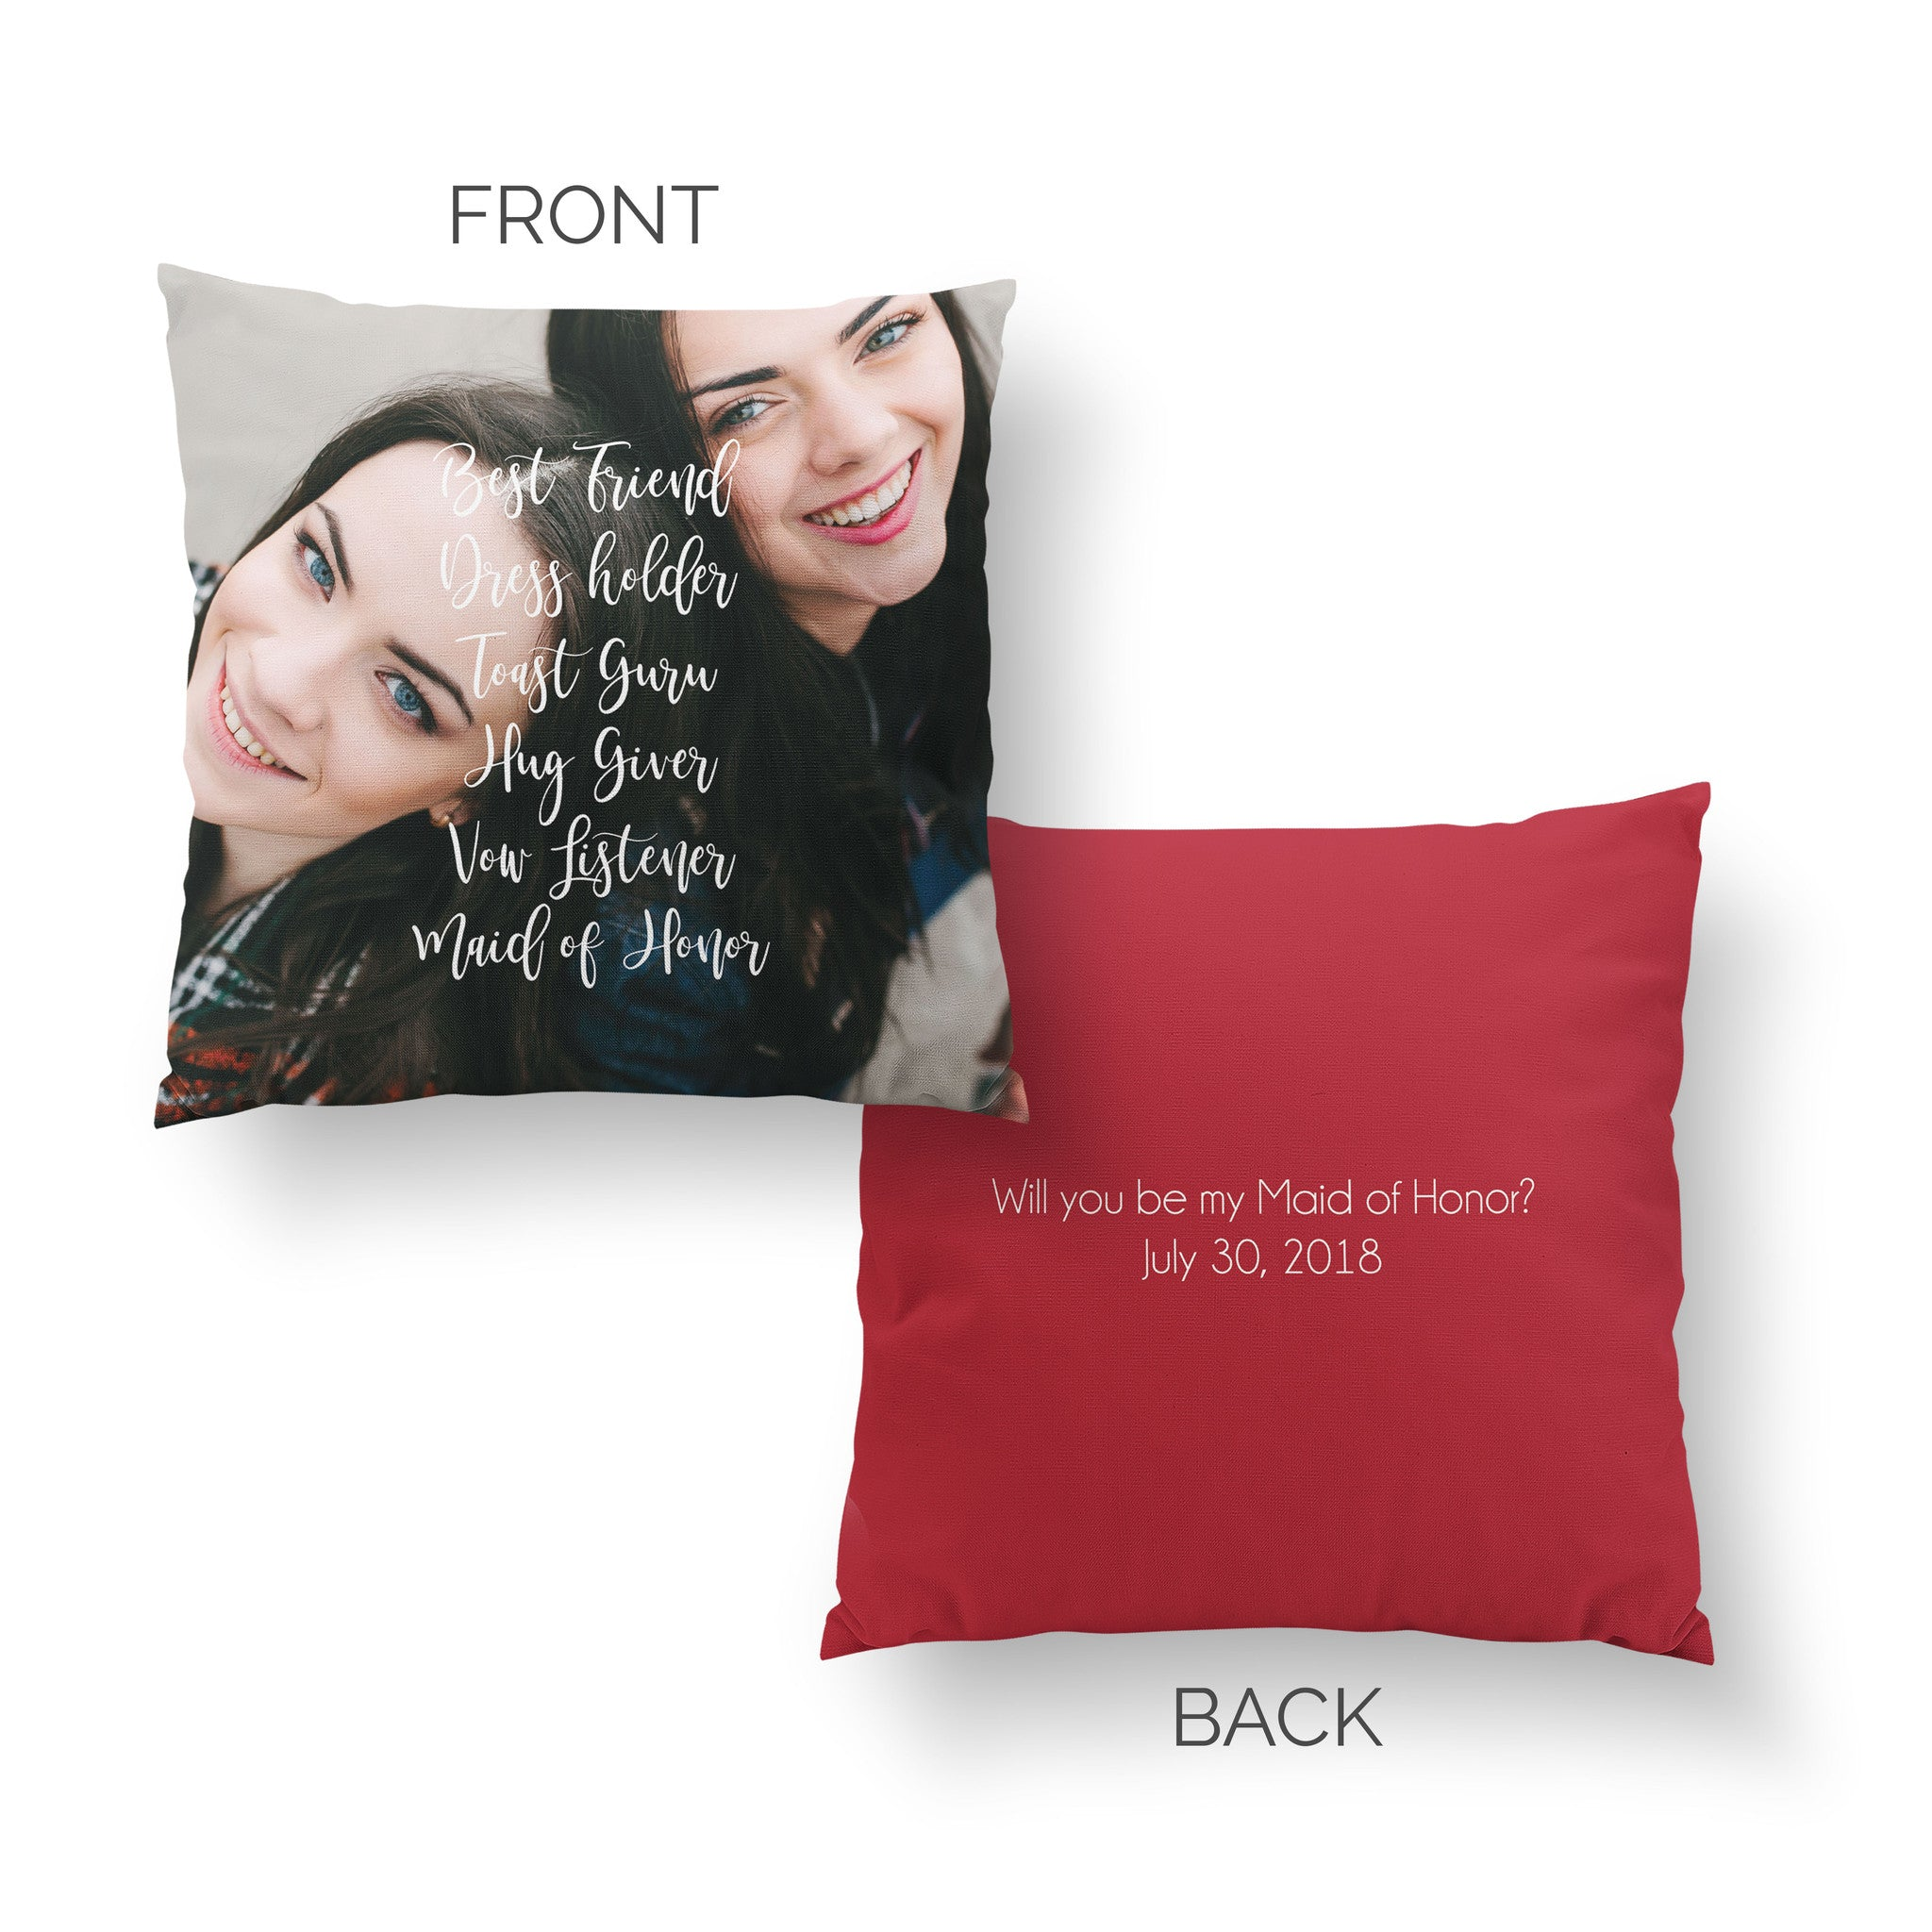 Maid of Honor Pillow - Best Friend